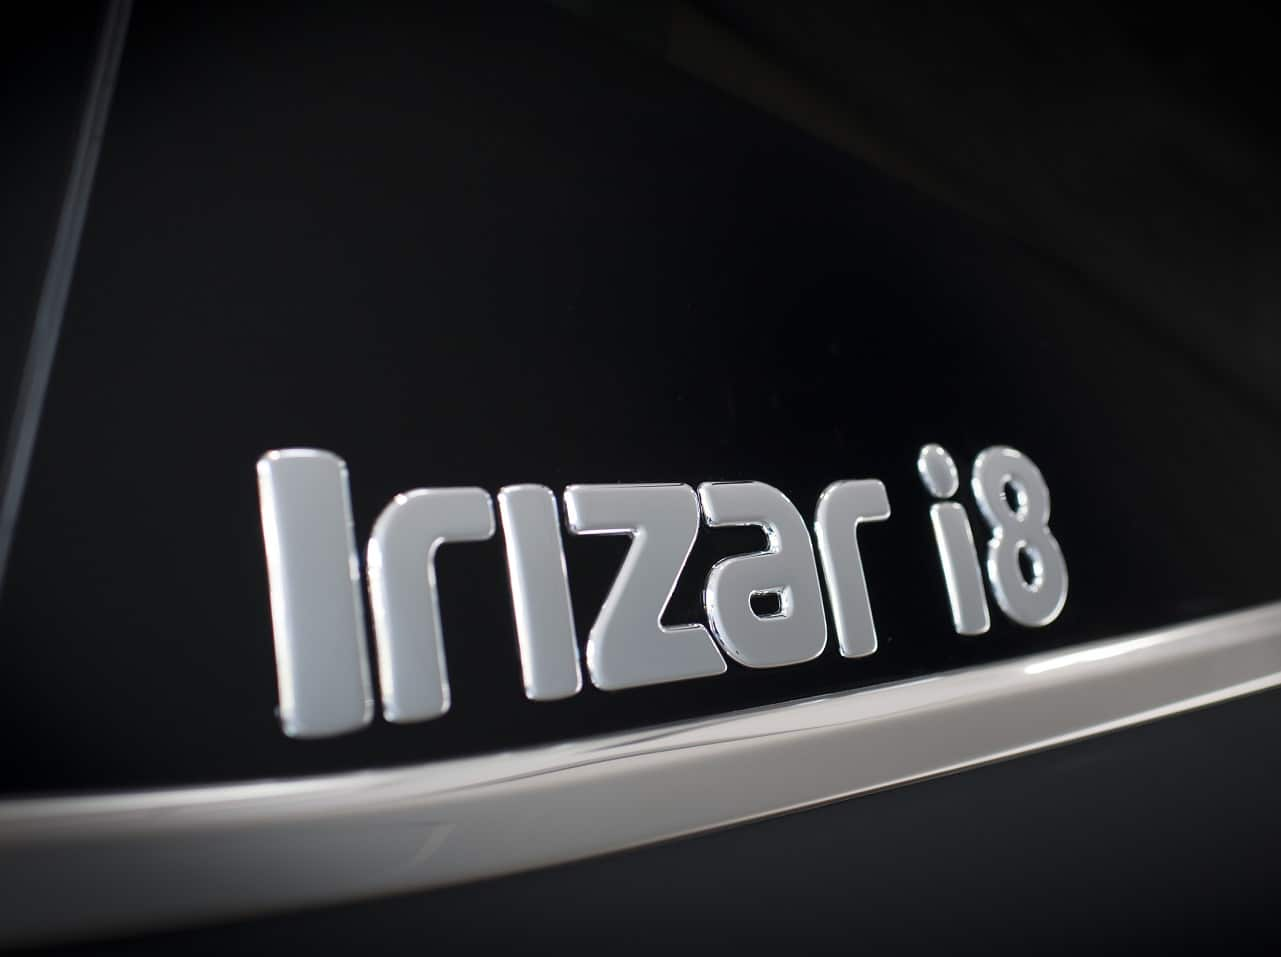 Irizar i8 badge image